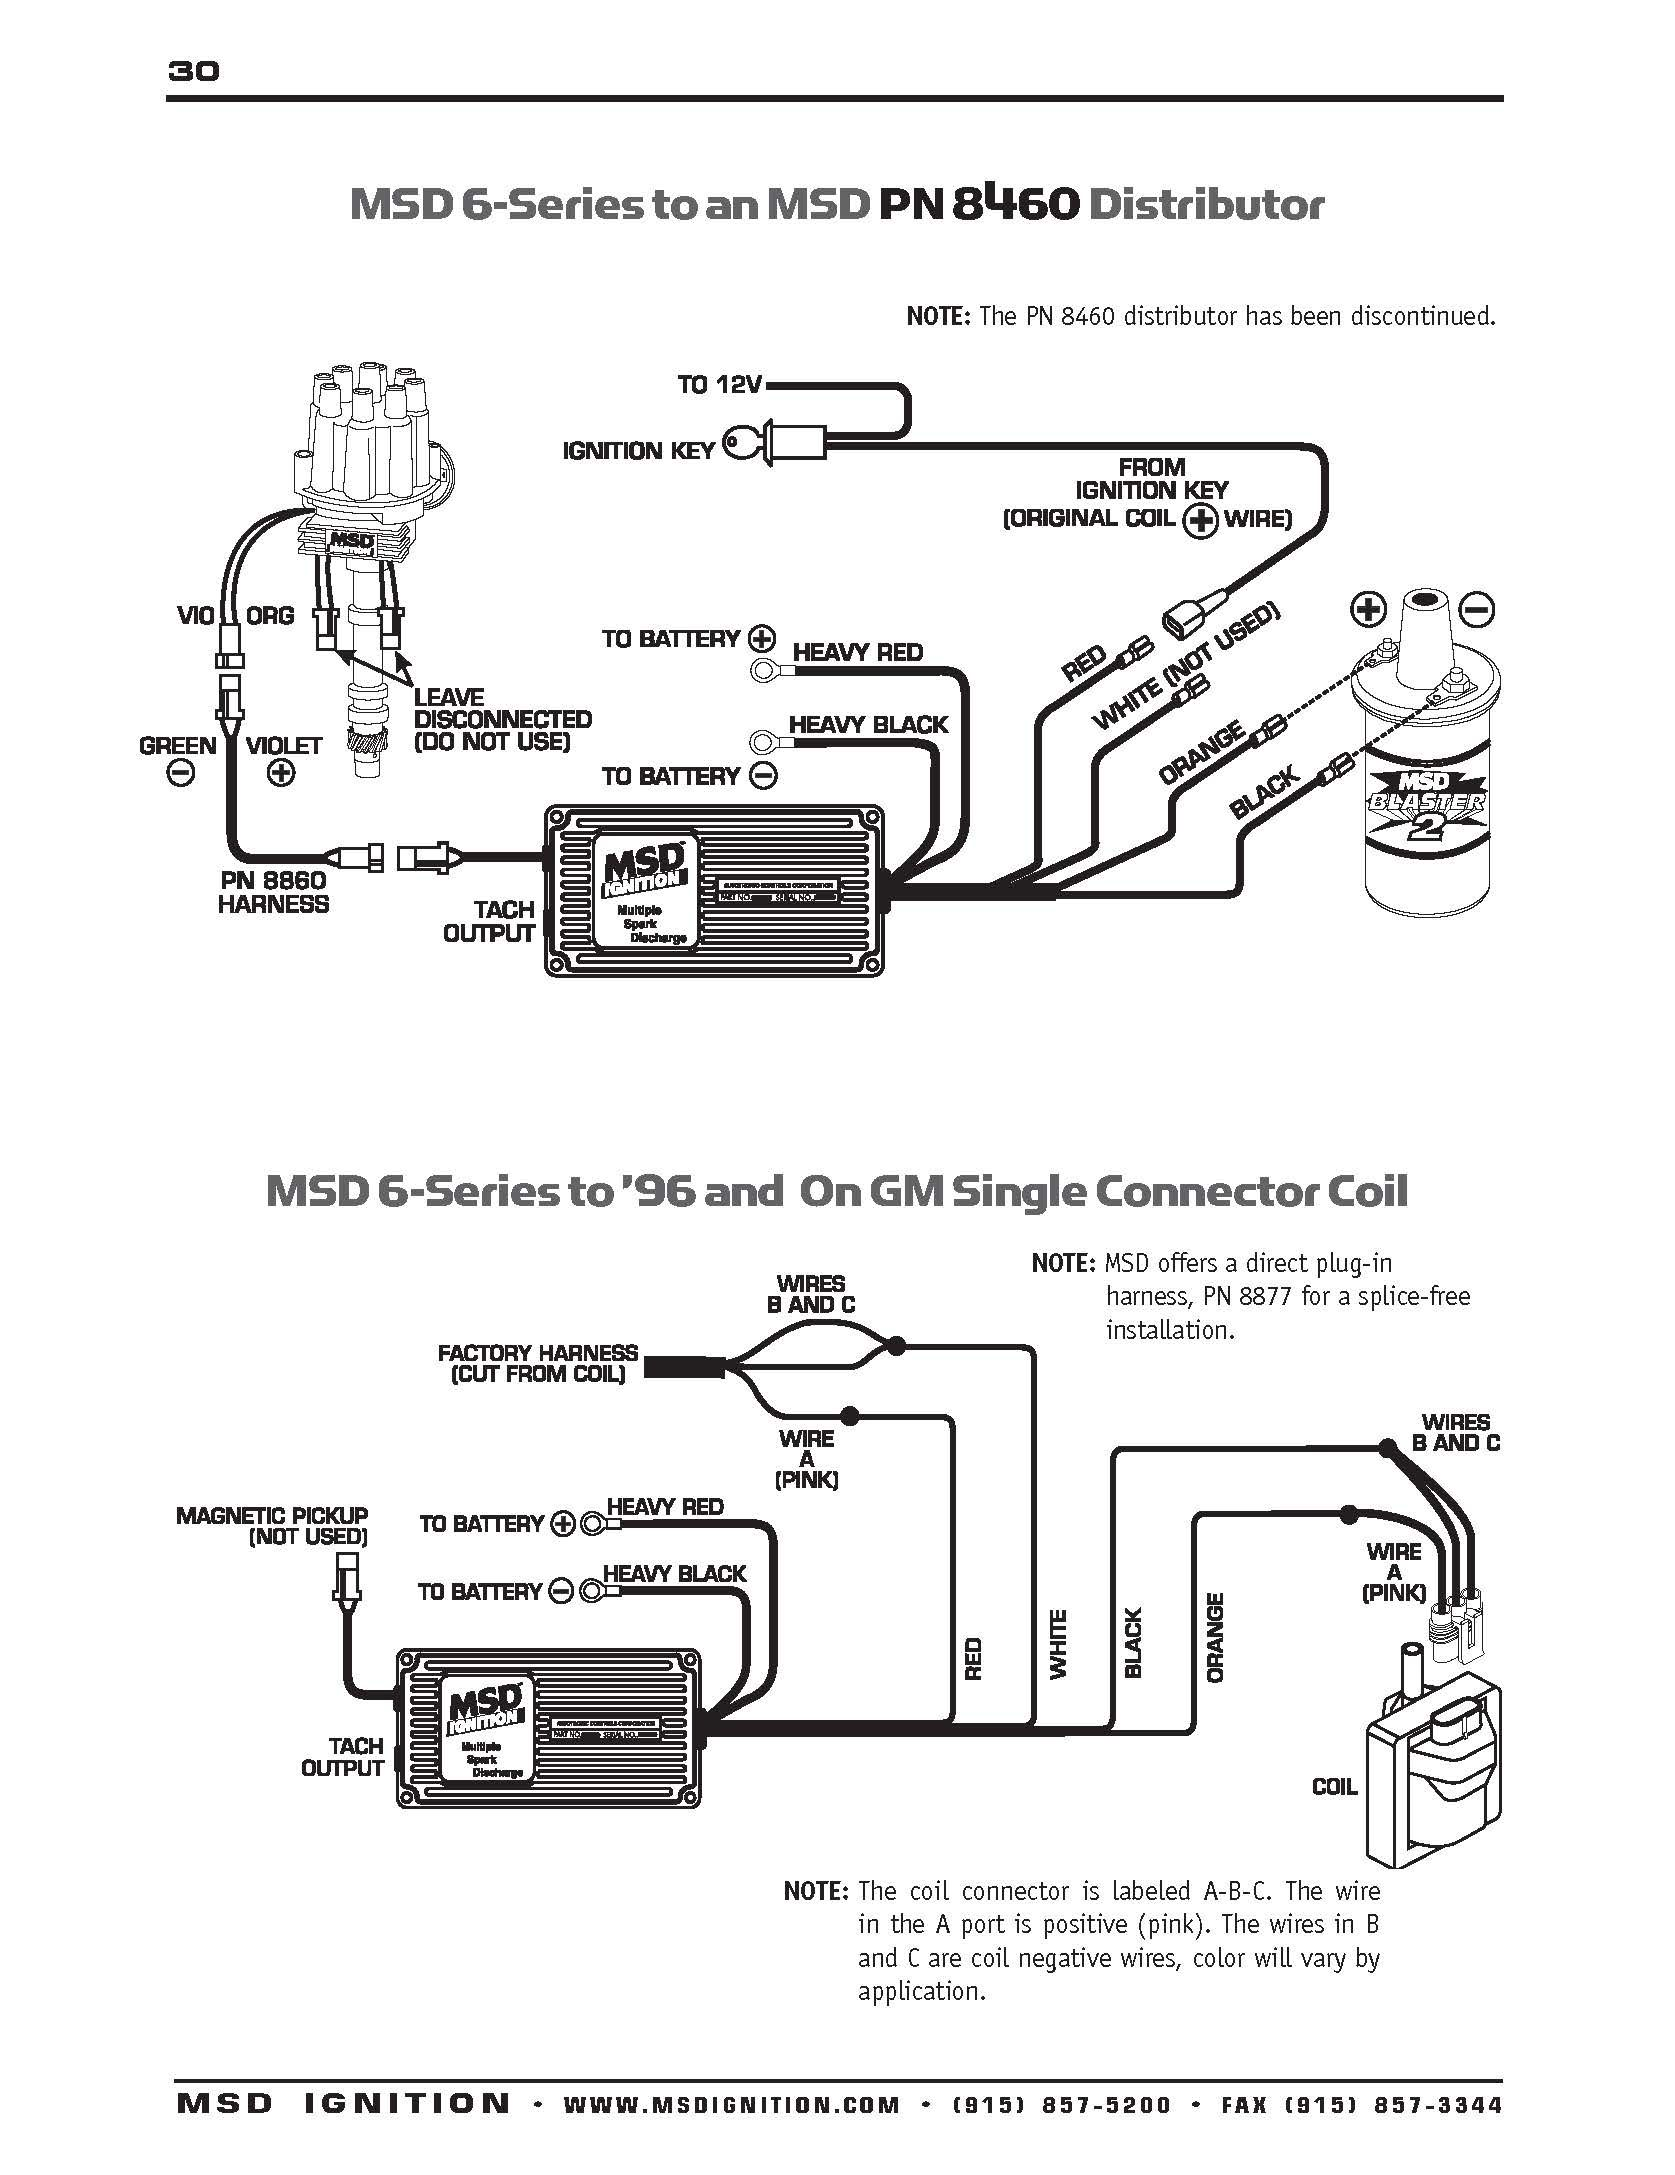 Msd Ignition Wiring Diagrams In Msd Distributor Diagram On Msd Distributor Wiring Diagram Ignition Coil Diagram Msd